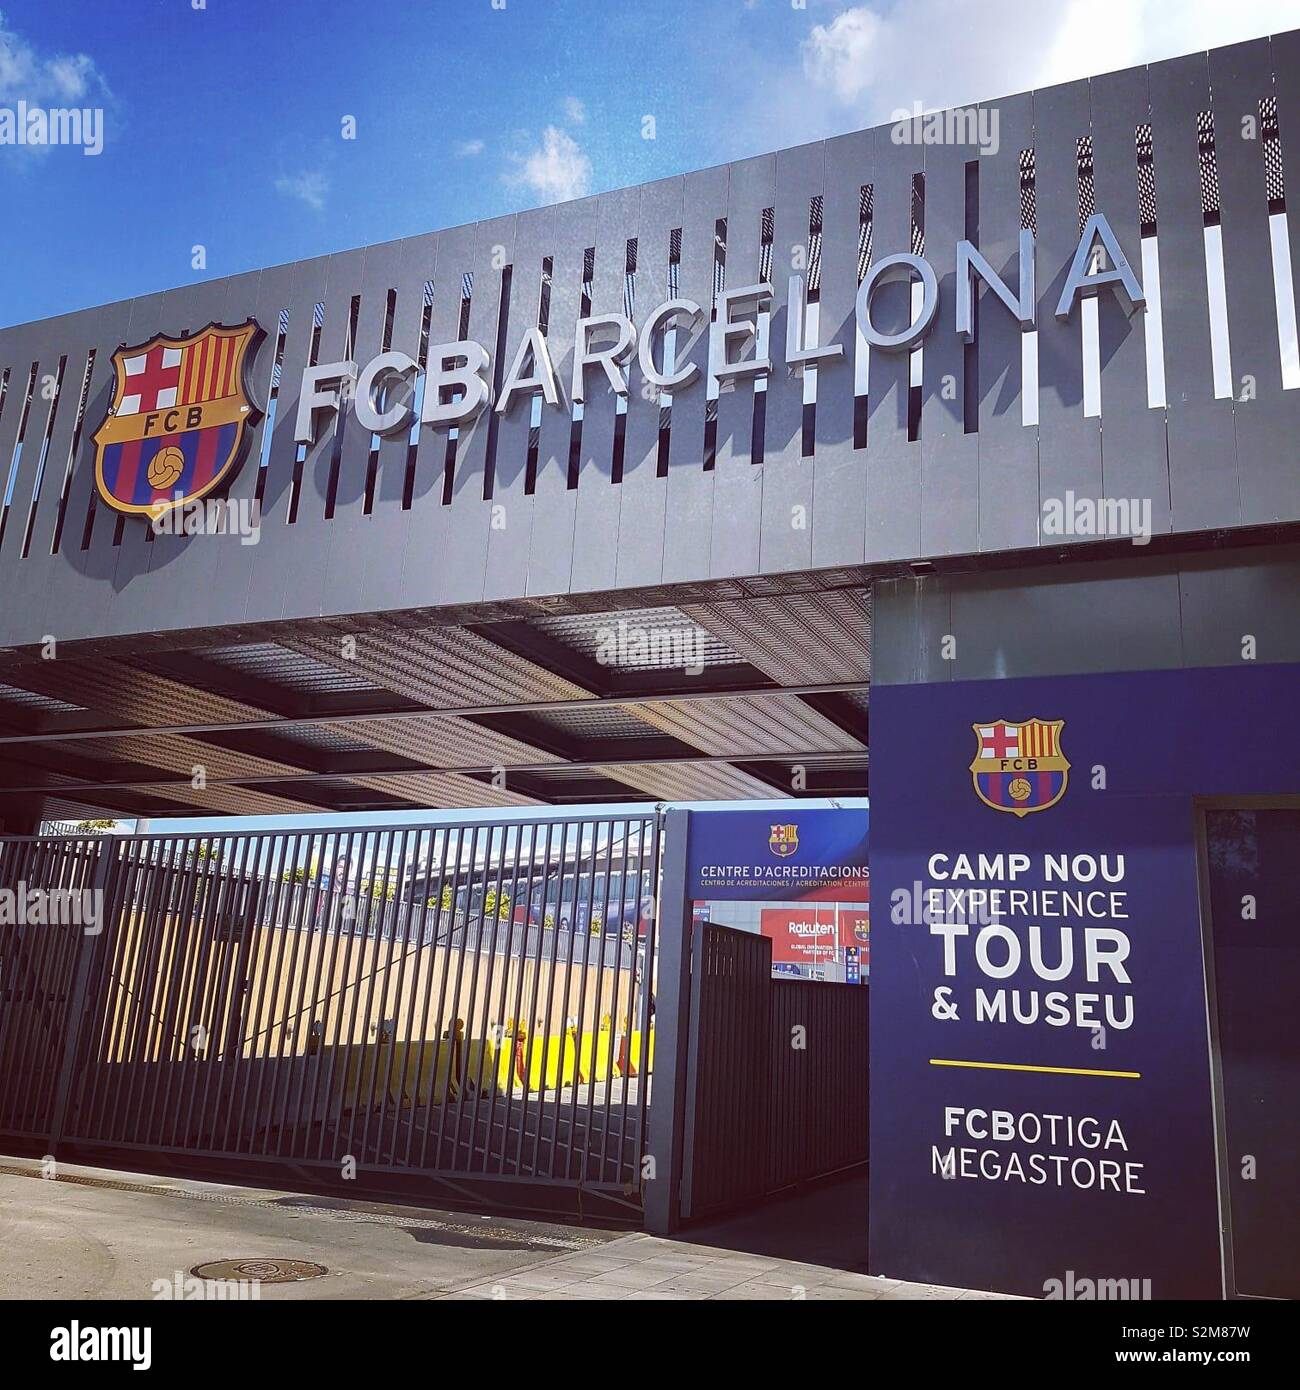 One of the entrances to the Nou Camp, home of Barcelona FC - Stock Image